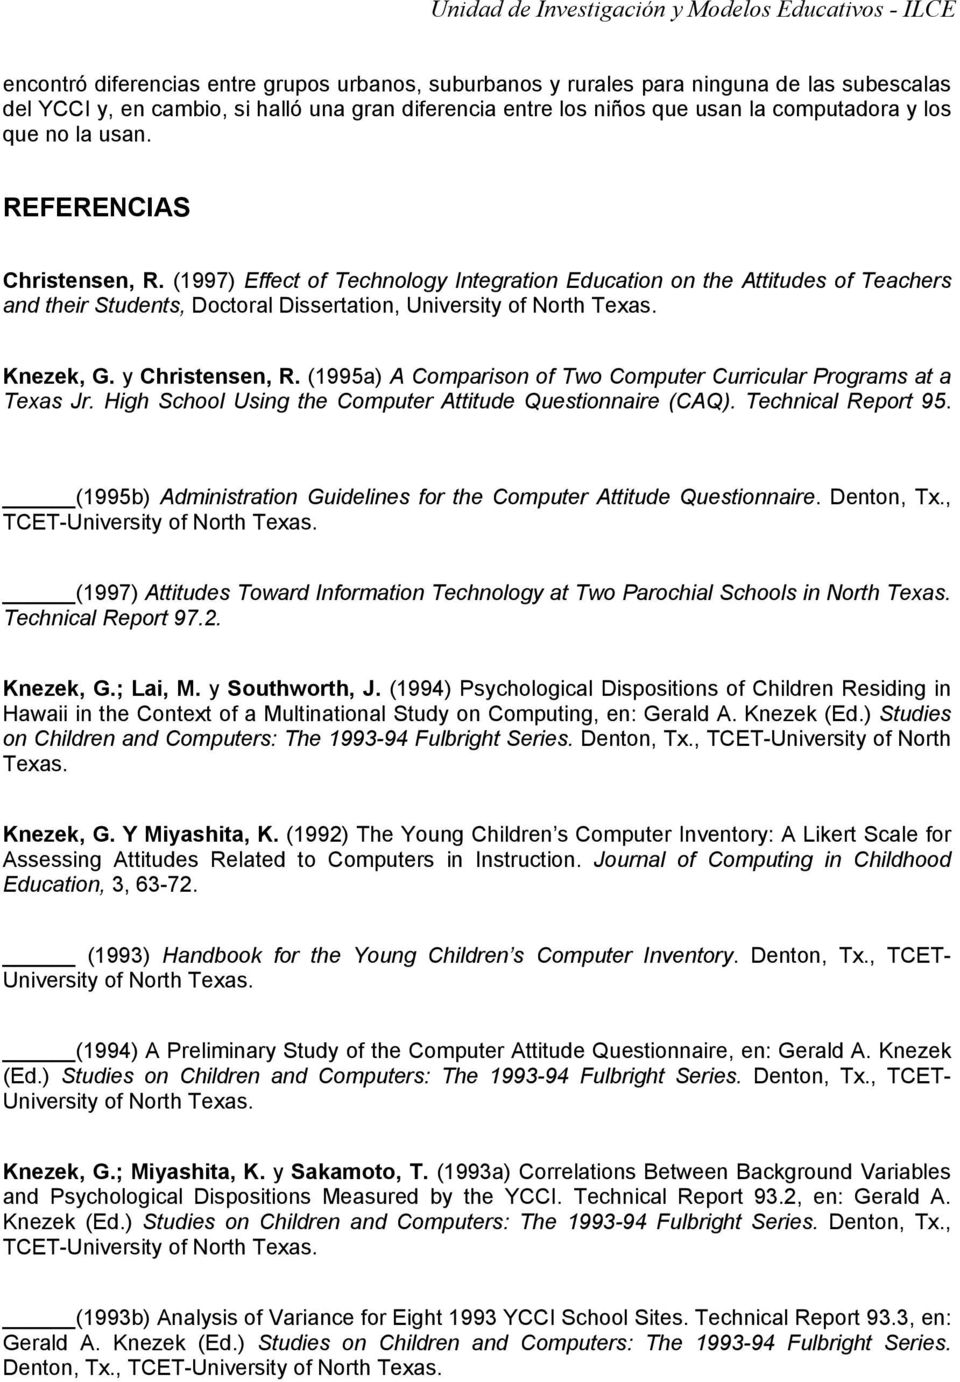 y Christensen, R. (1995a) A Comparison of Two Computer Curricular Programs at a Texas Jr. High School Using the Computer Attitude Questionnaire (CAQ). Technical Report 95. http://www.tcet.unt.